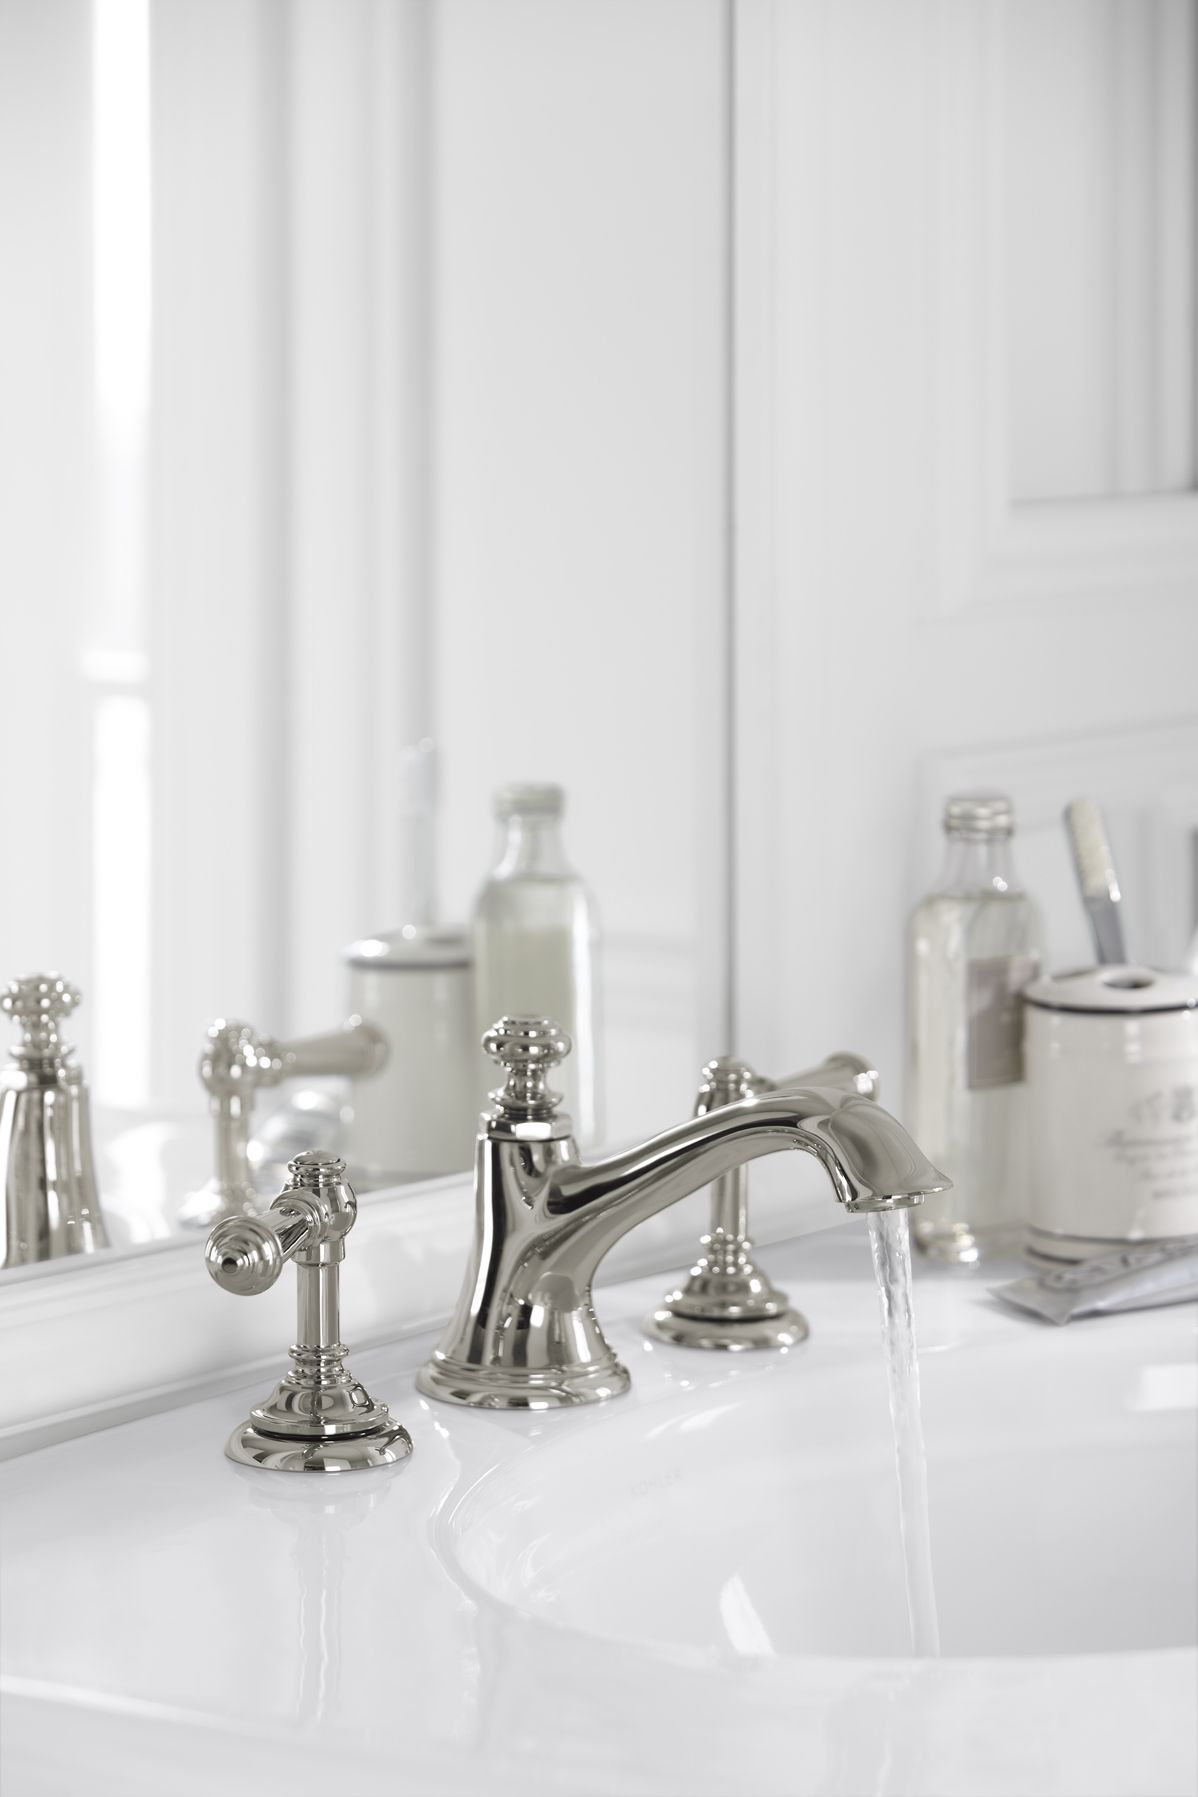 Ideas Bathroom Sink Faucets Artifacts Faucet Collection By Kohler Bathroom Sink Faucet